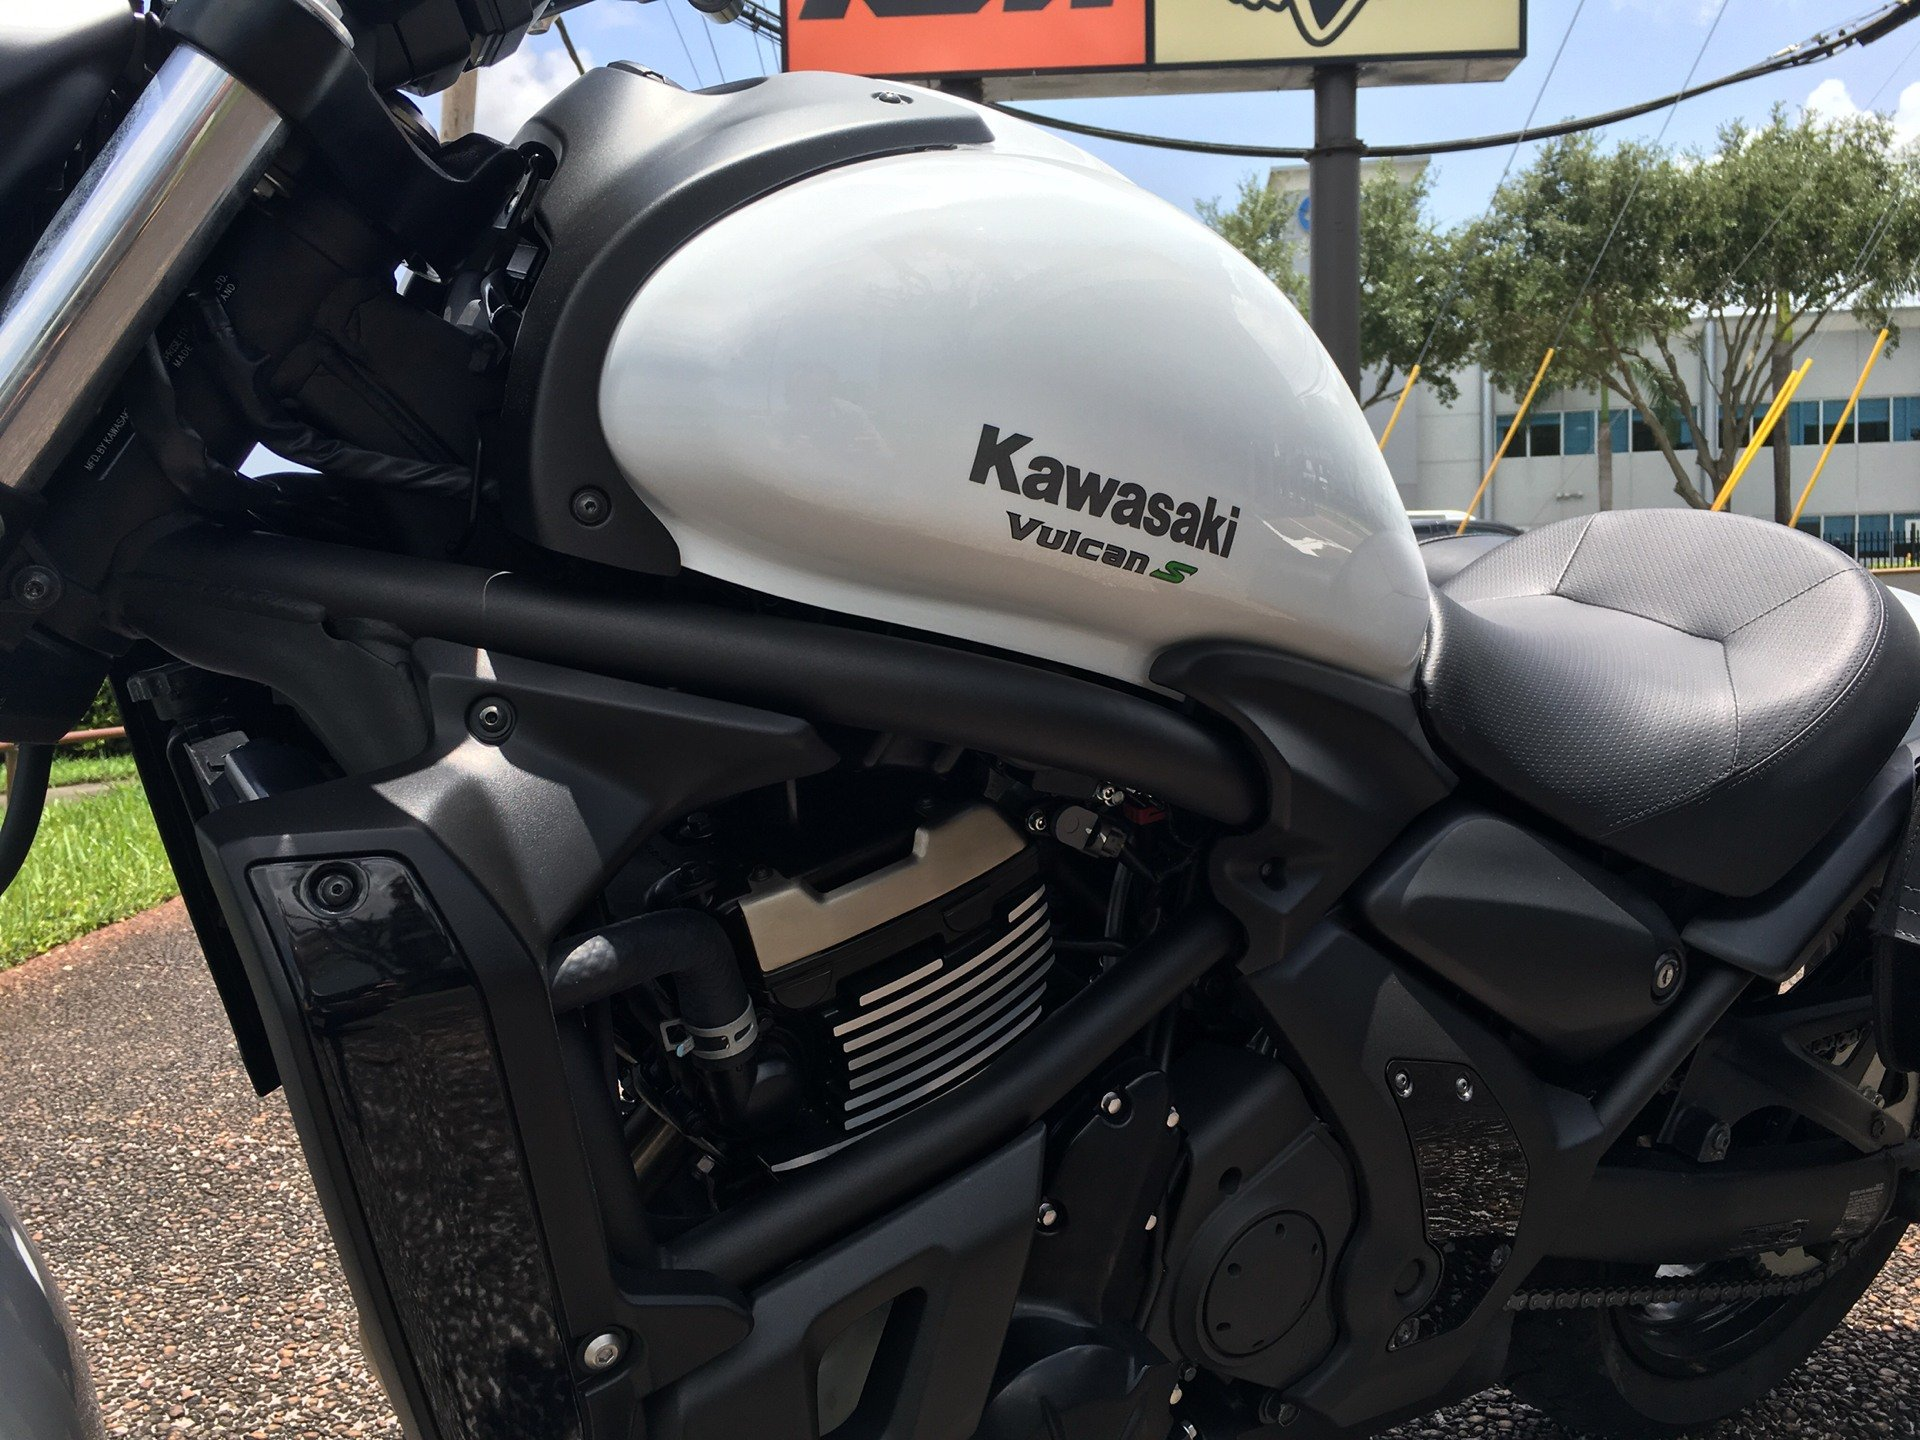 2018 Kawasaki Vulcan S ABS in Hialeah, Florida - Photo 3